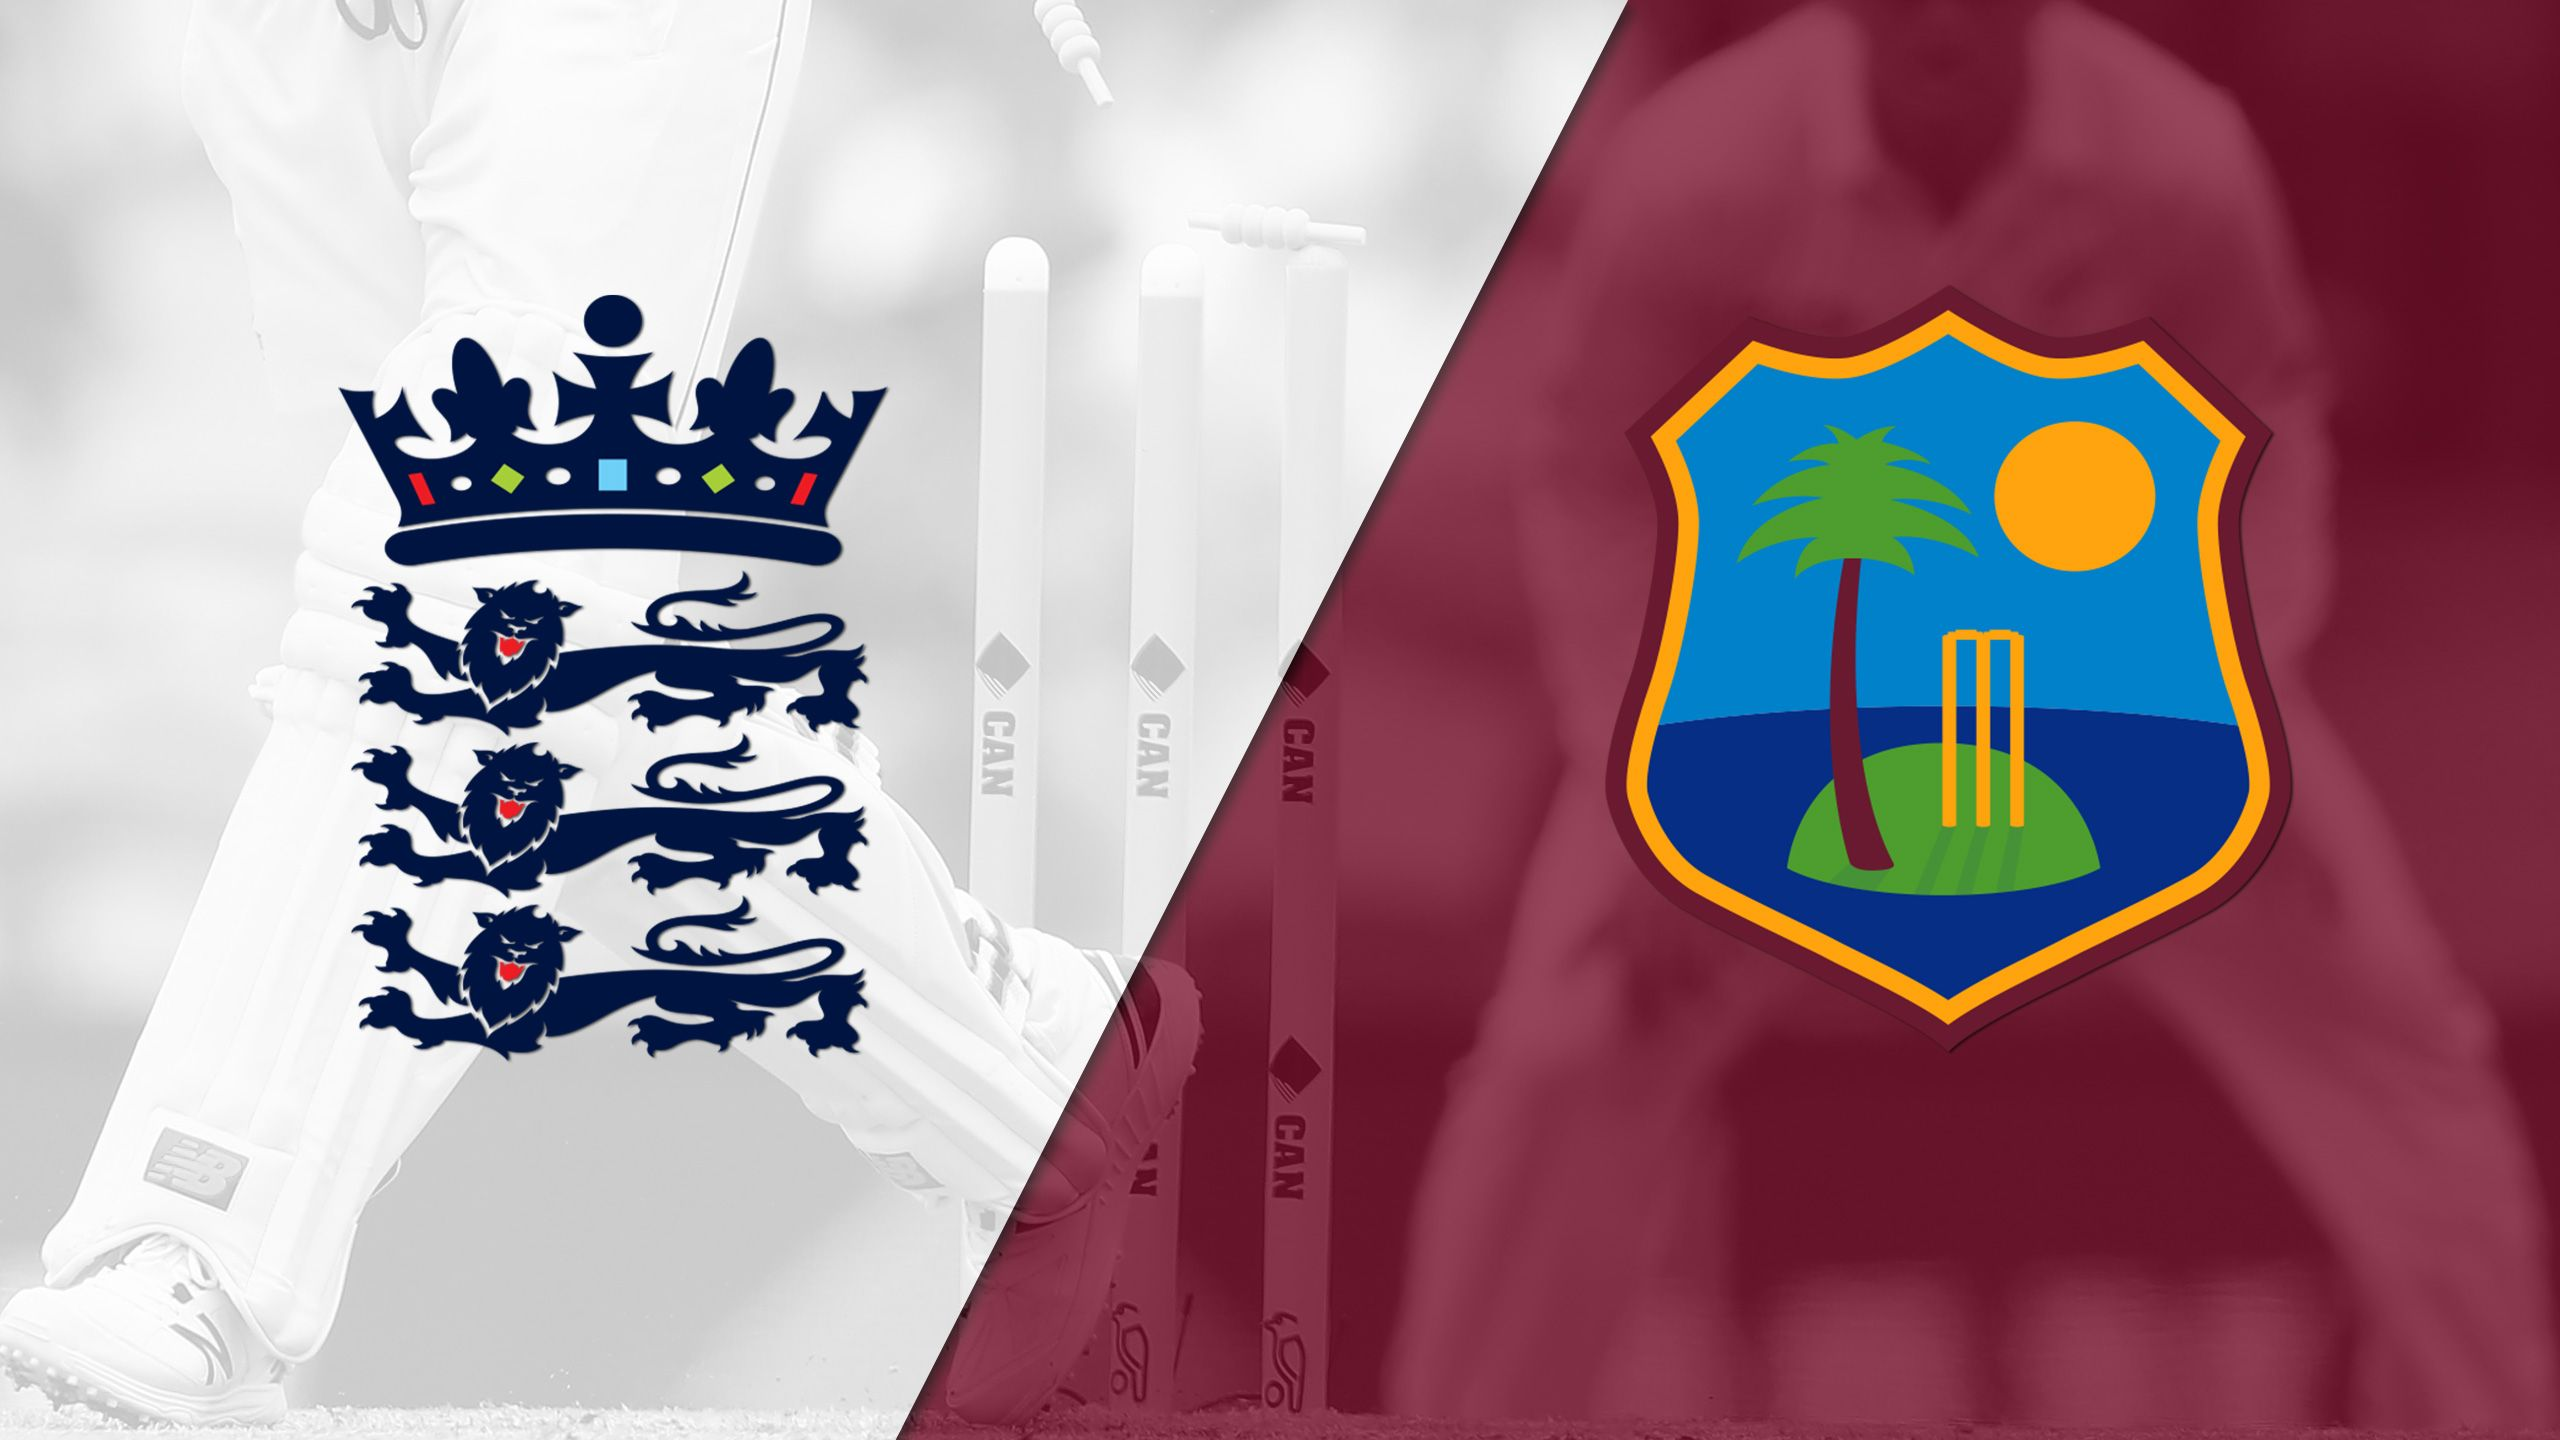 England vs. West Indies (Test 1, Day 1) (International Cricket)